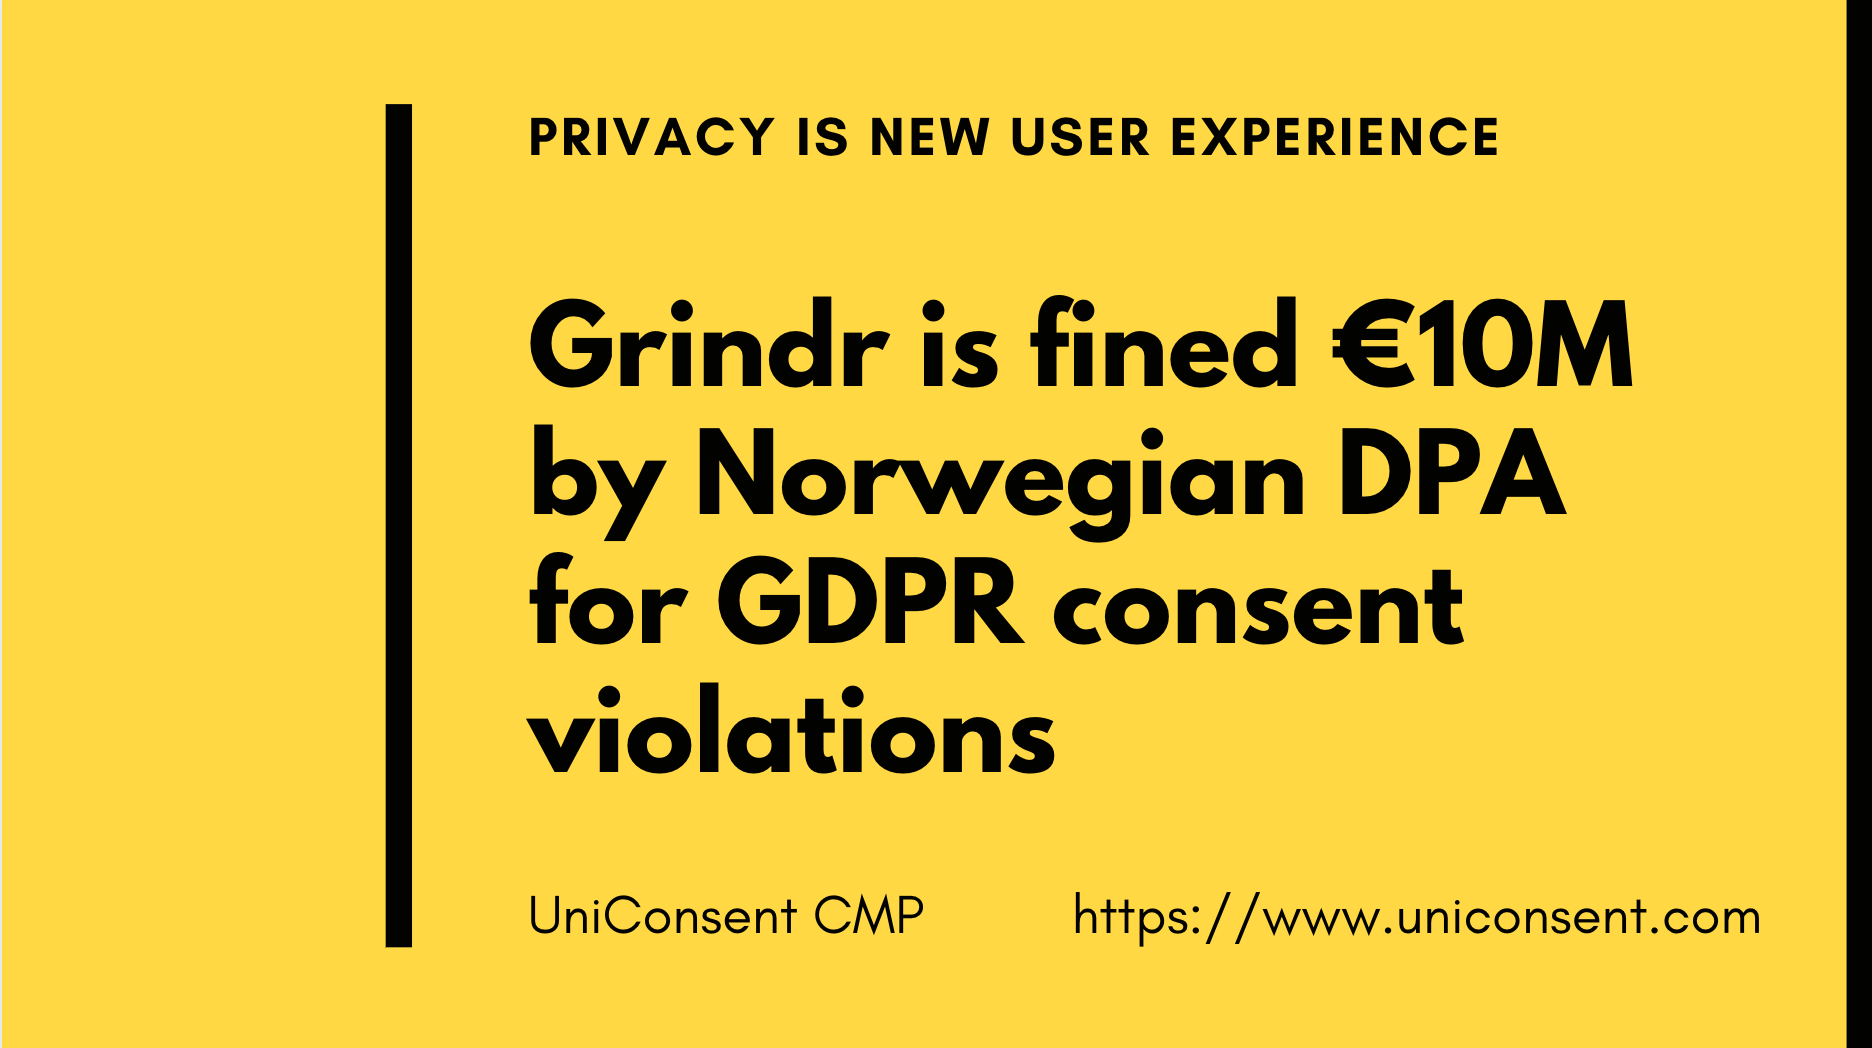 GDPR: Grindr is fined €10M by Norwegian DPA for GDPR consent violations